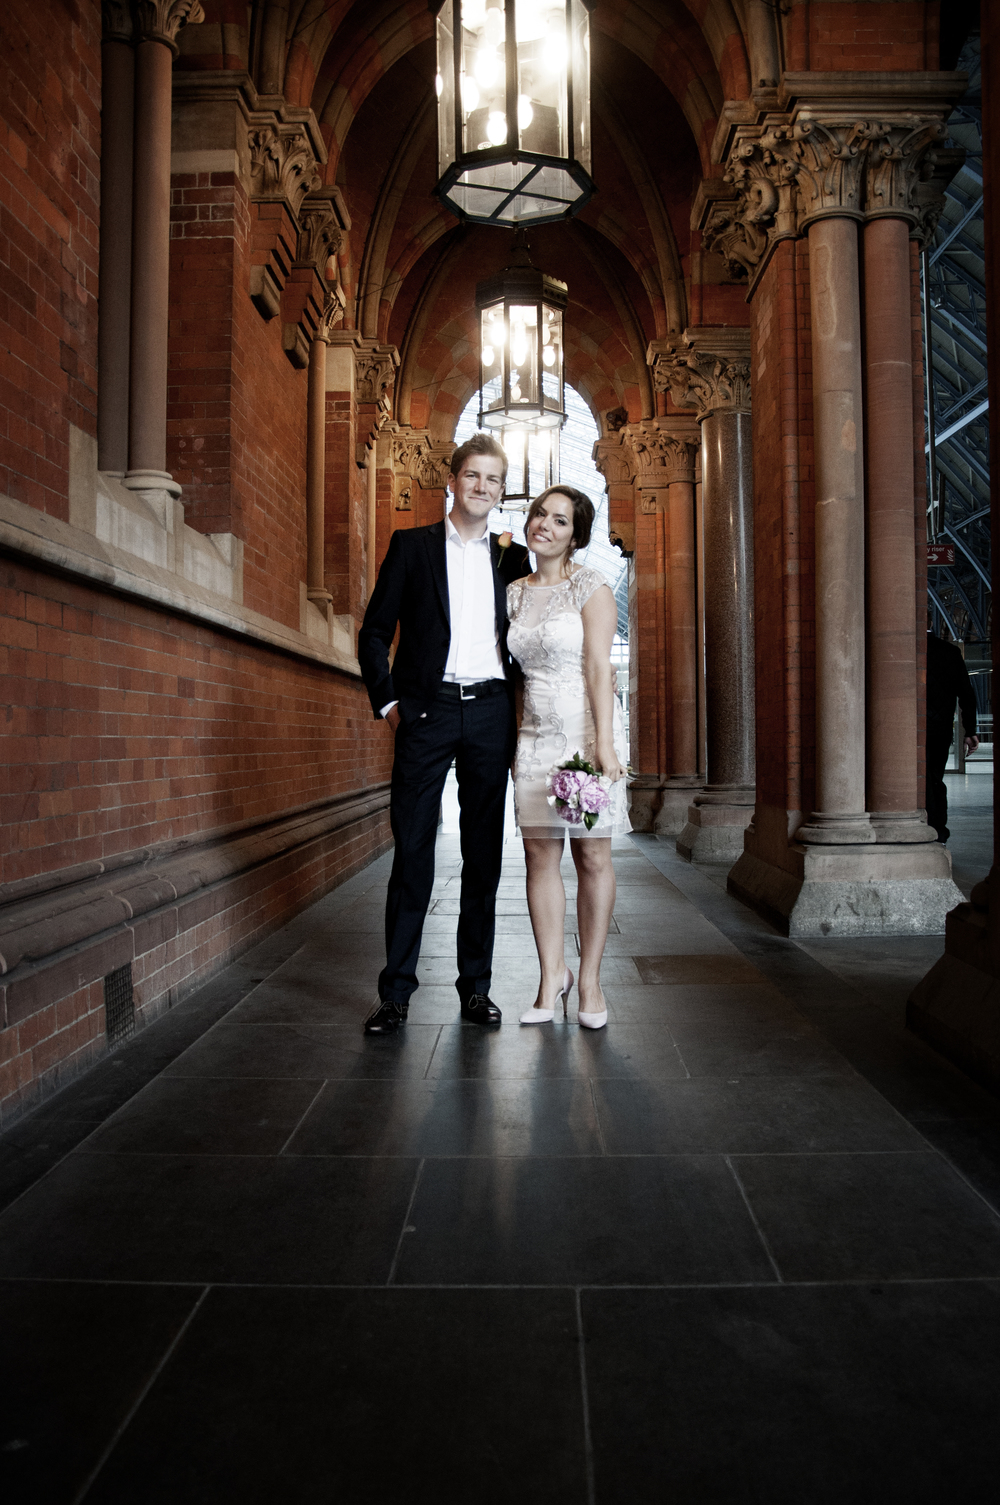 Pre Wedding Venue  - St. Pancras Station